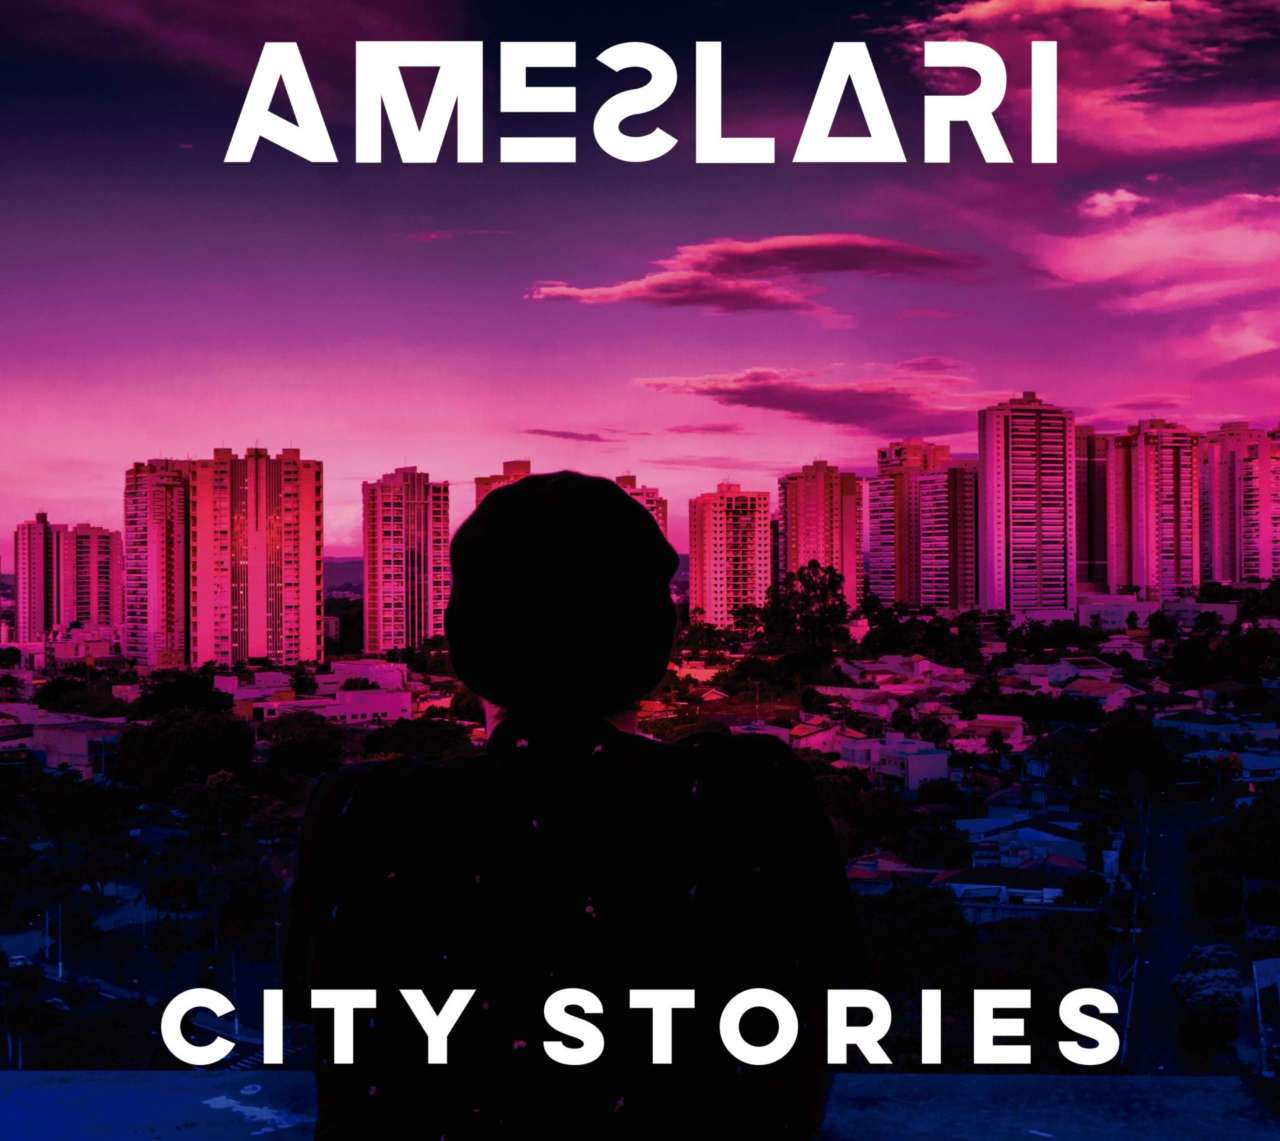 Ameslari – City Stories""